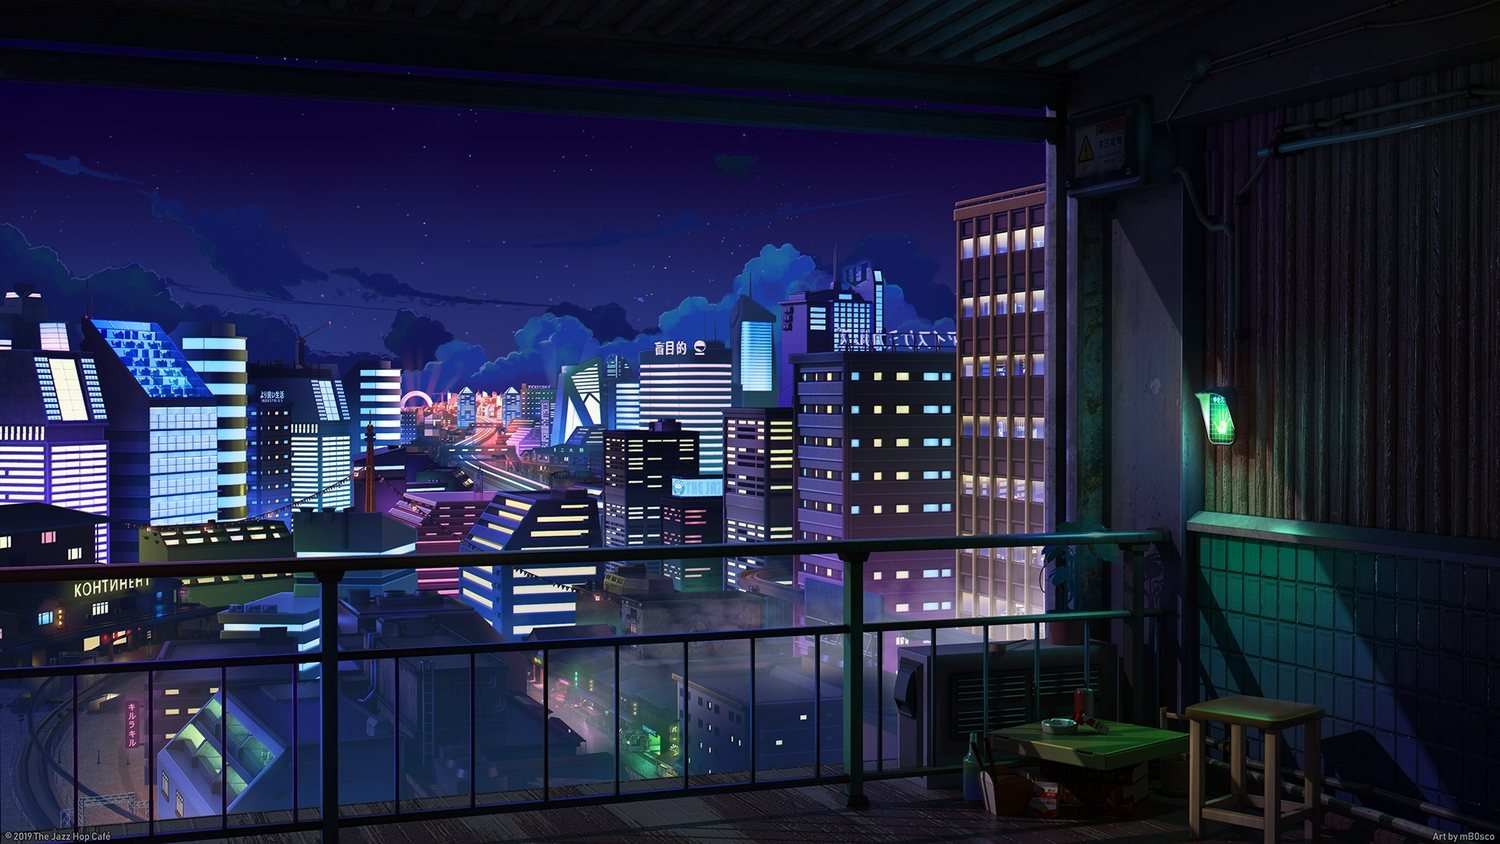 3d building city clouds mb0sco night nobody original scenic sky stars the_jazz_hop_cafe watermark